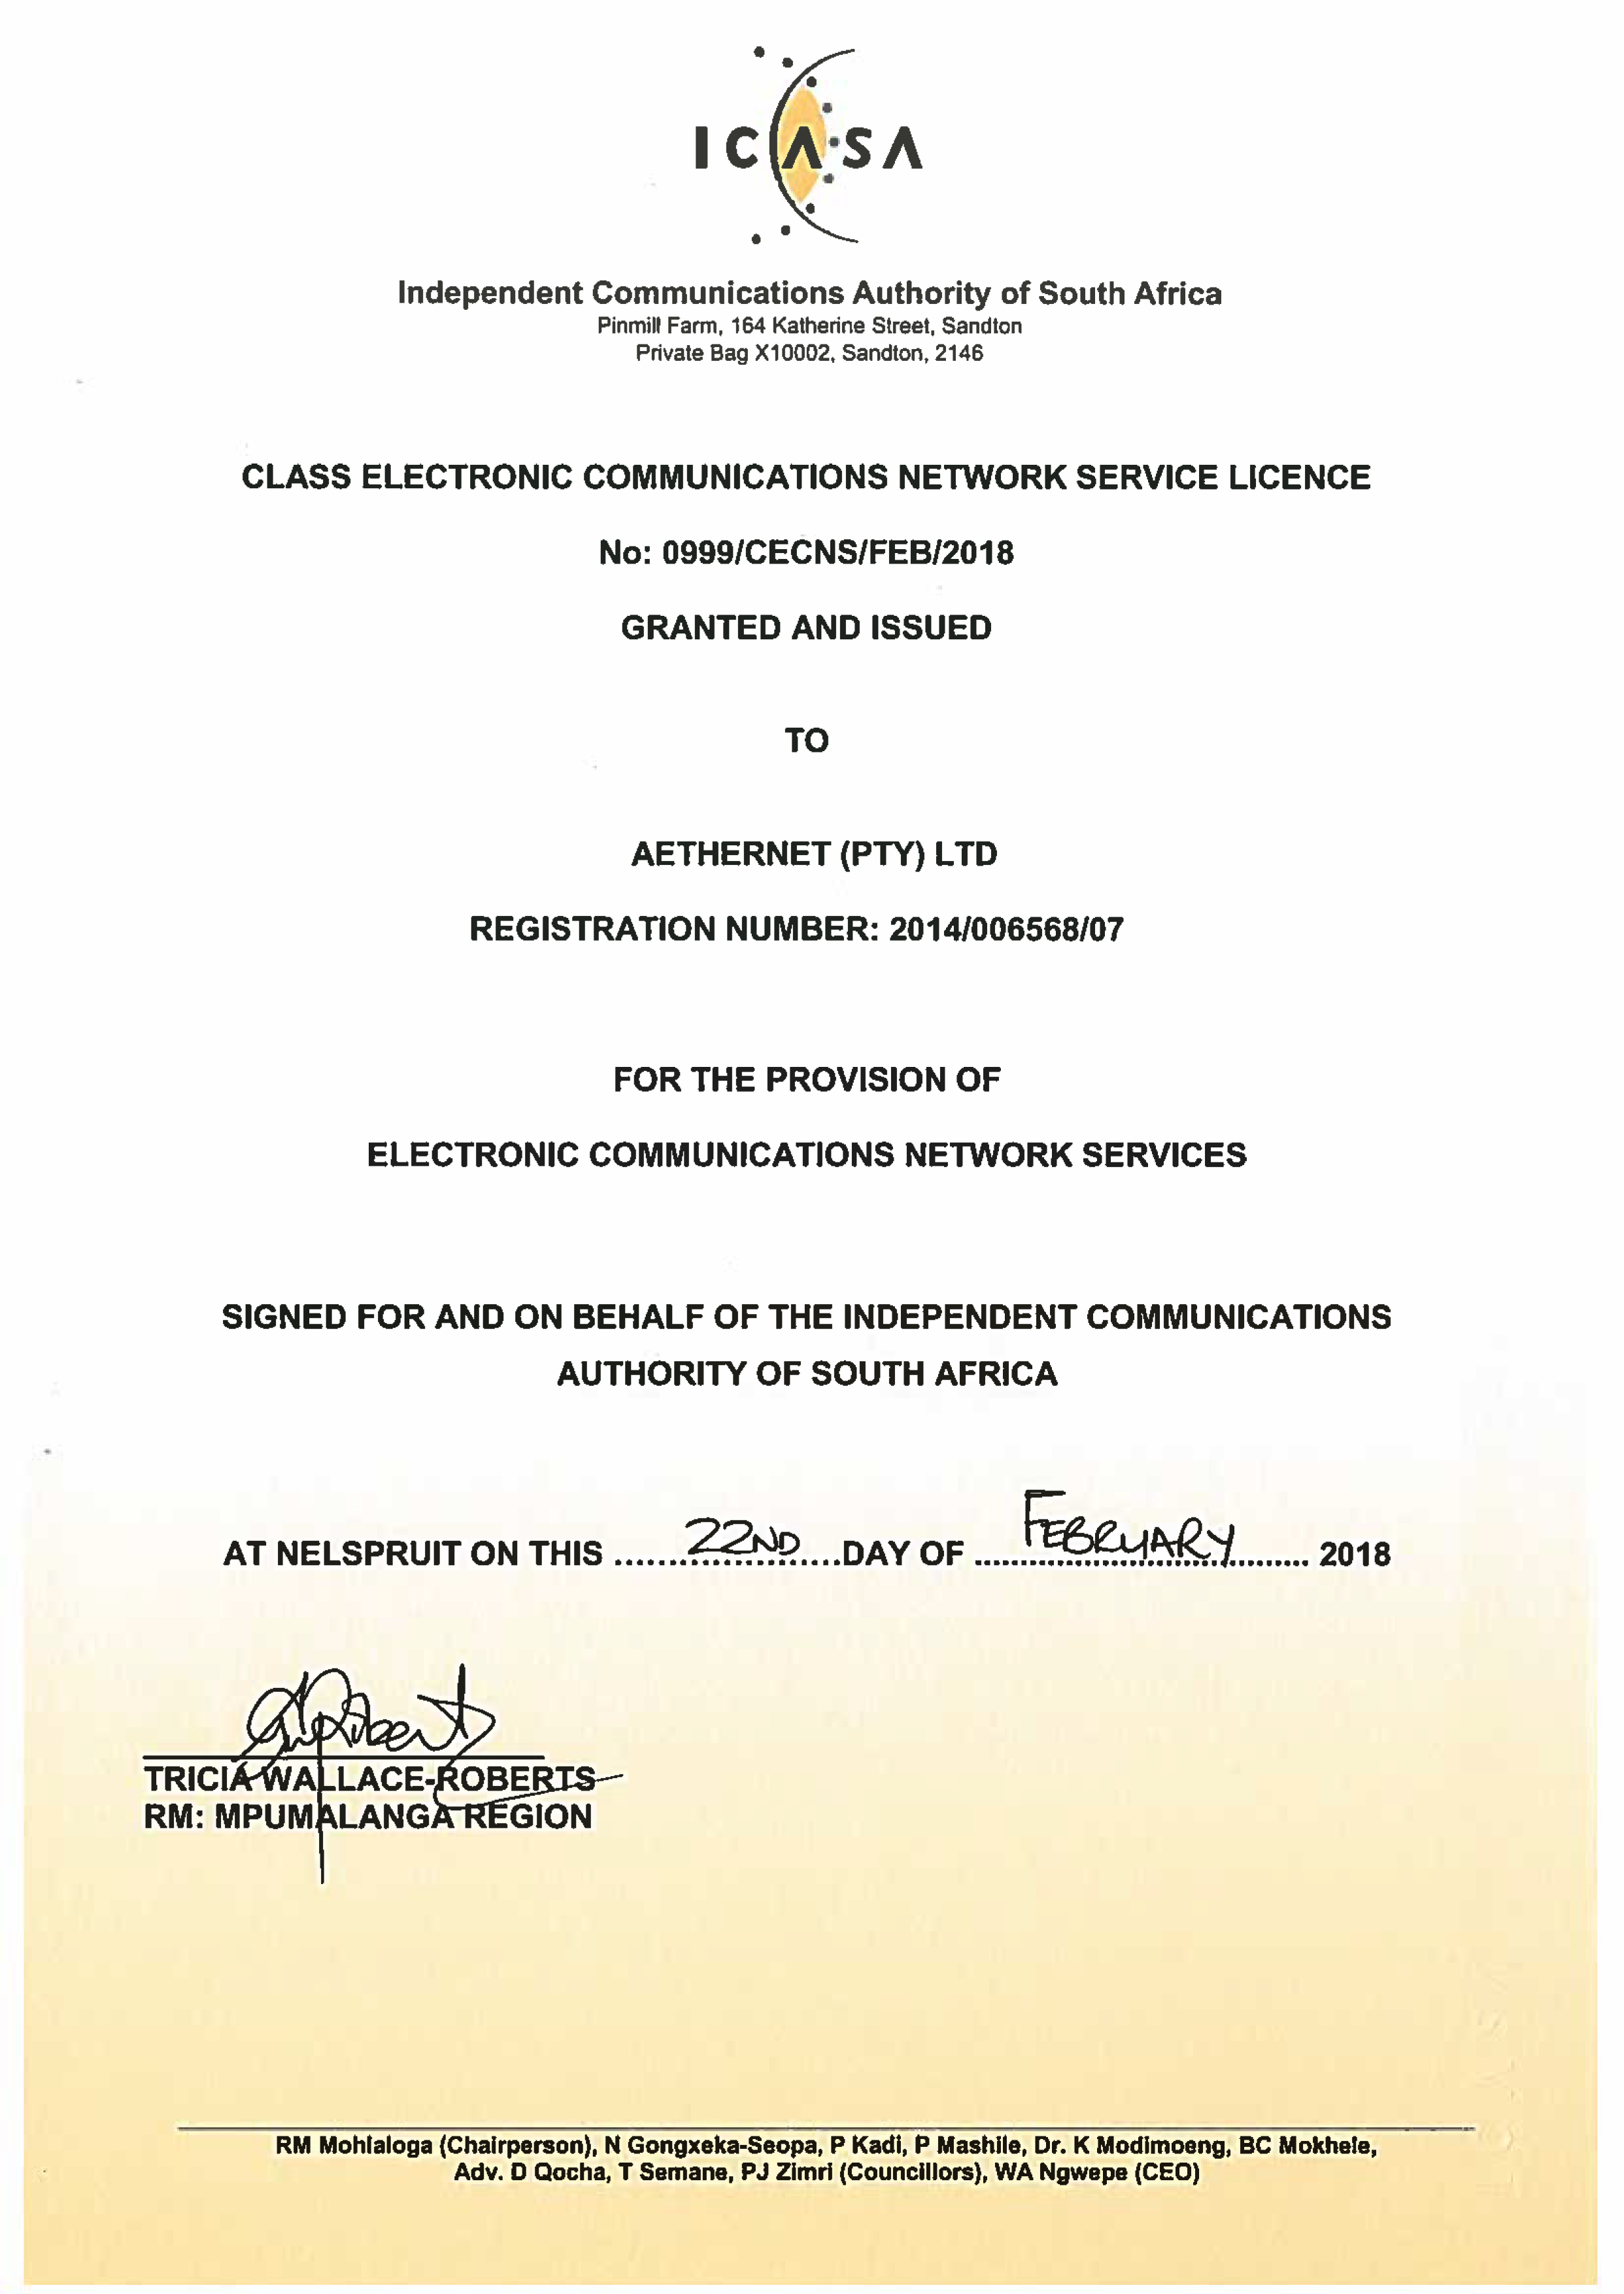 Our license to build and operate network infrastructure.